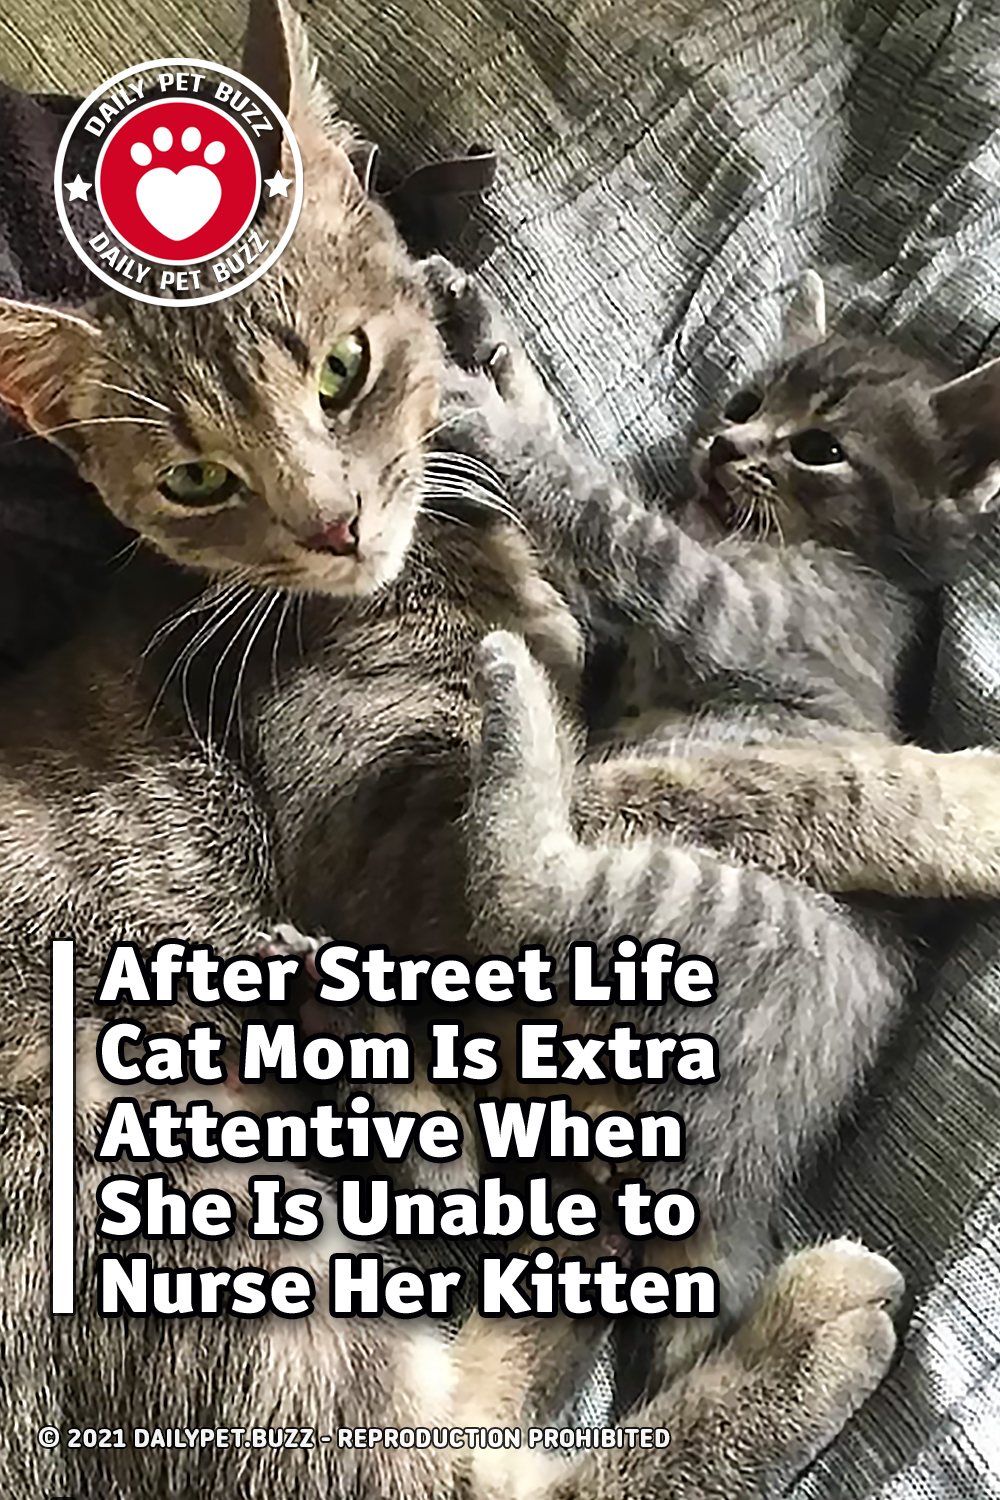 After Street Life Cat Mom Is Extra Attentive When She Is Unable to Nurse Her Kitten